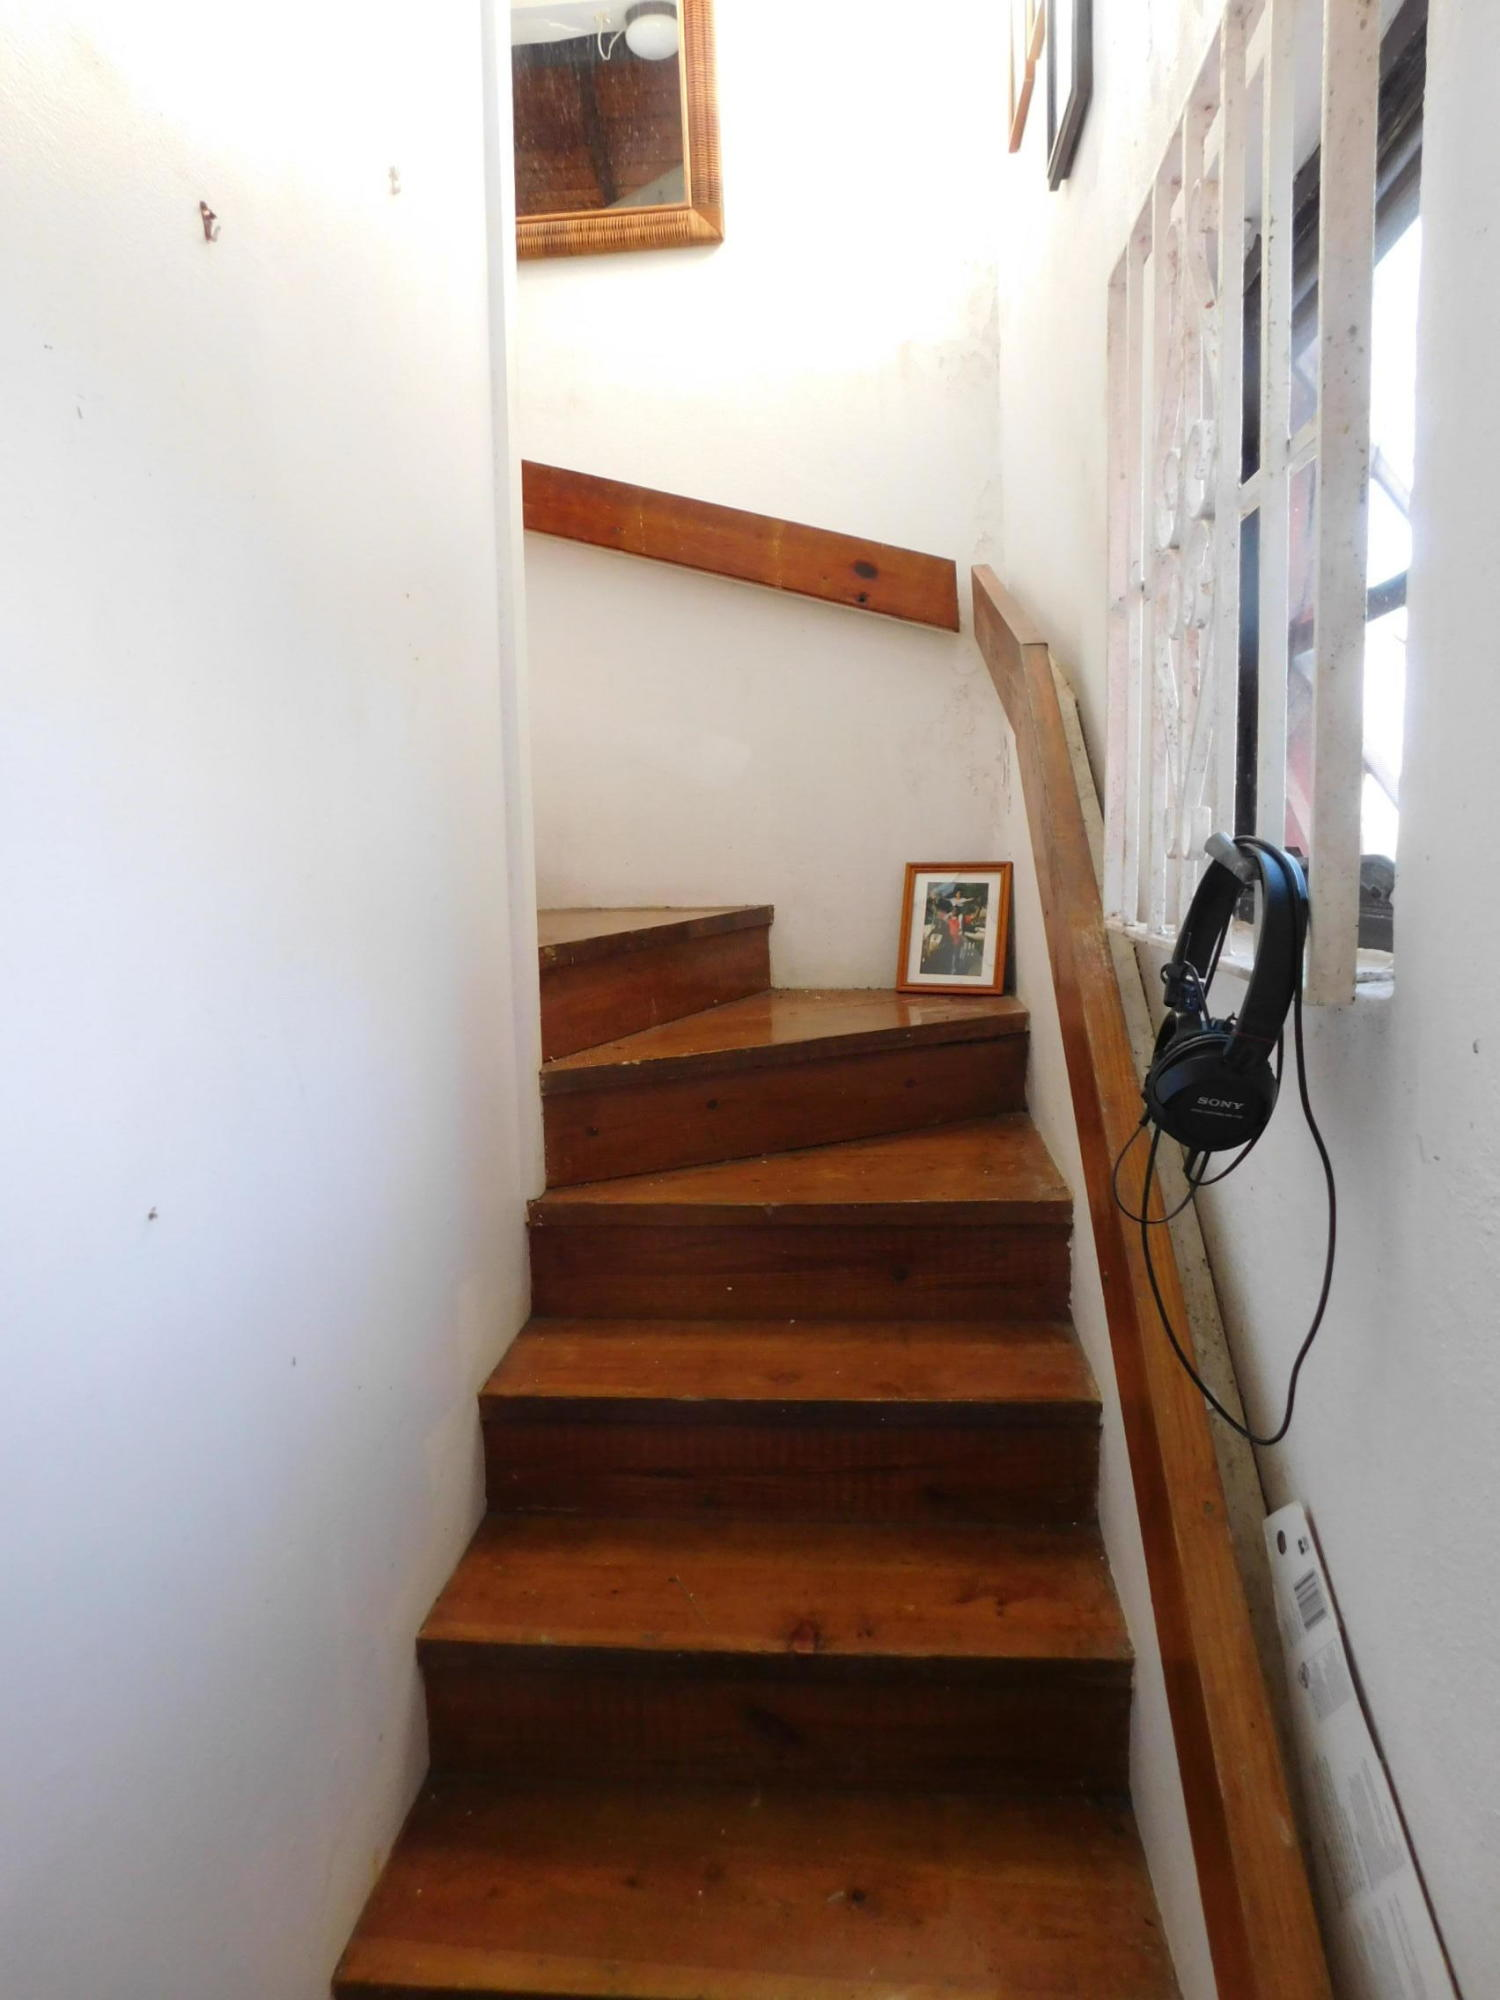 Stairwell from the bottom